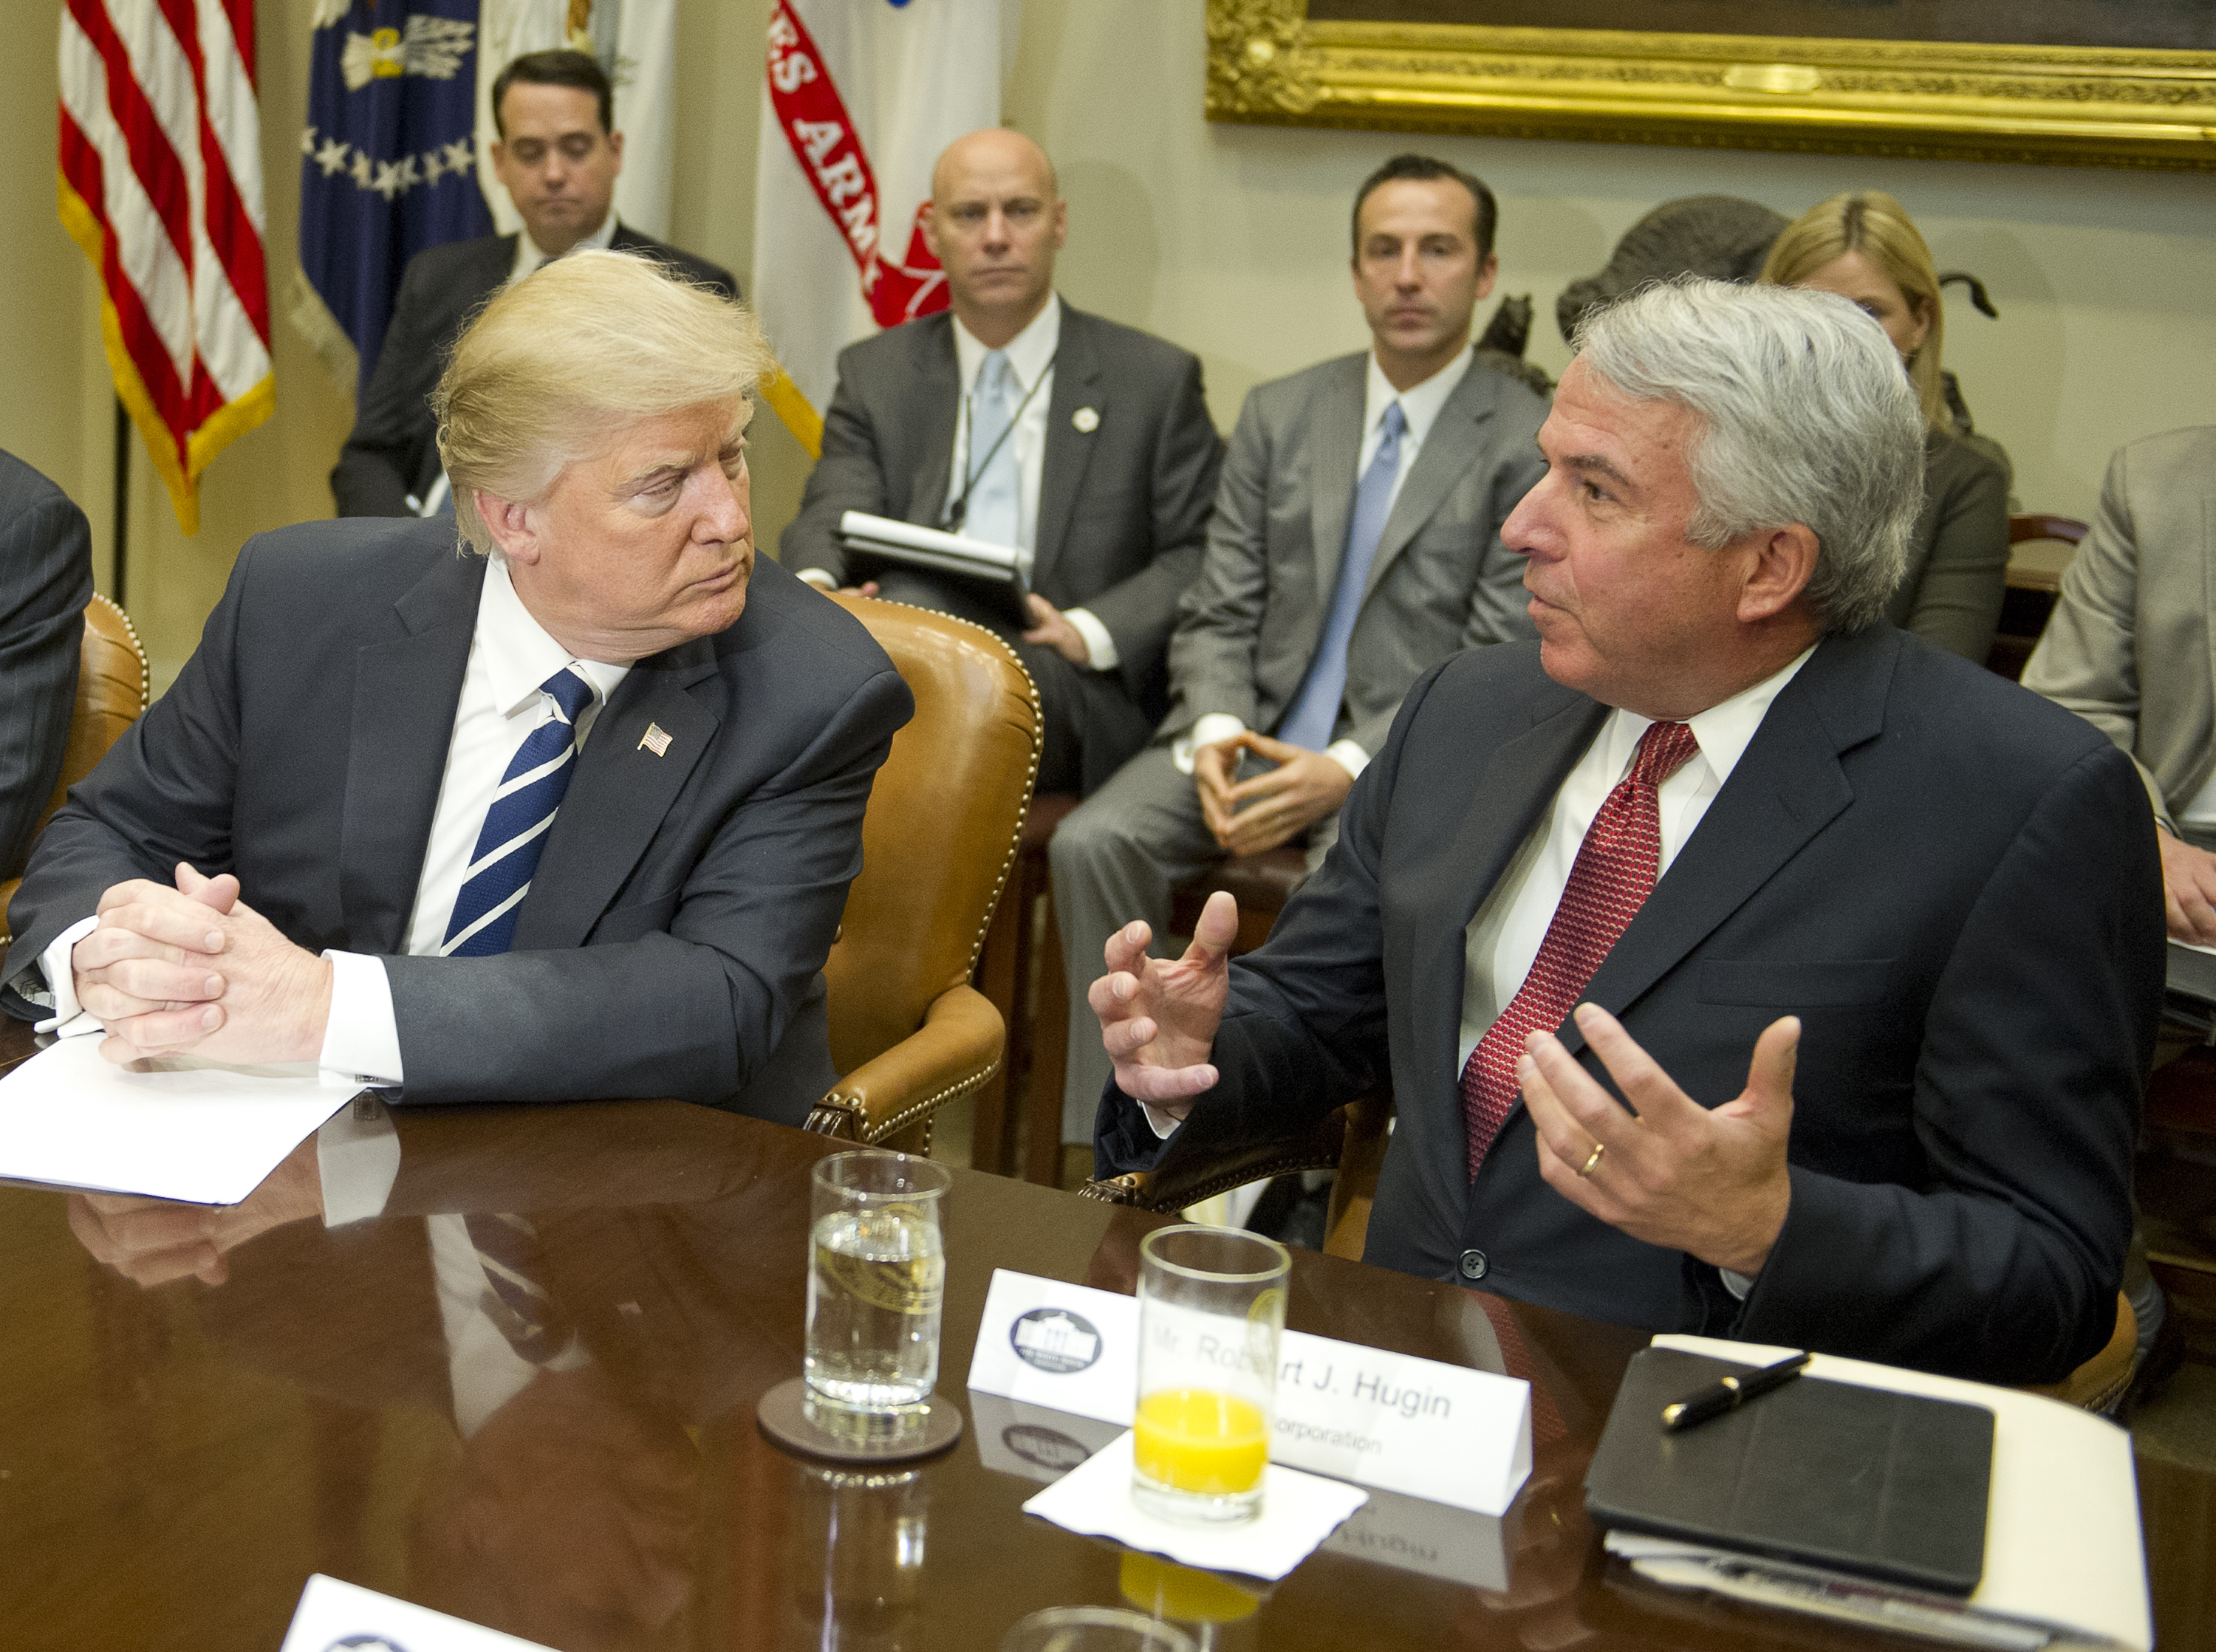 "WASHINGTON, DC - JANUARY 31: (AFP OUT) (L-R) U.S. President Donald Trump listens to Robert J. Hugin, Executive Chairman of the Celgene Corporation during a meeting with representatives from PhRMA, the Pharmaceutical Research and Manufacturers of America in the Roosevelt Room of the White House on January 31, 2017 in Washington, DC. According to its website PhRMA ""represents the country's leading biopharmaceutical researchers and biotechnology companies."" (Photo by Ron Sachs - Pool/Getty Images)"